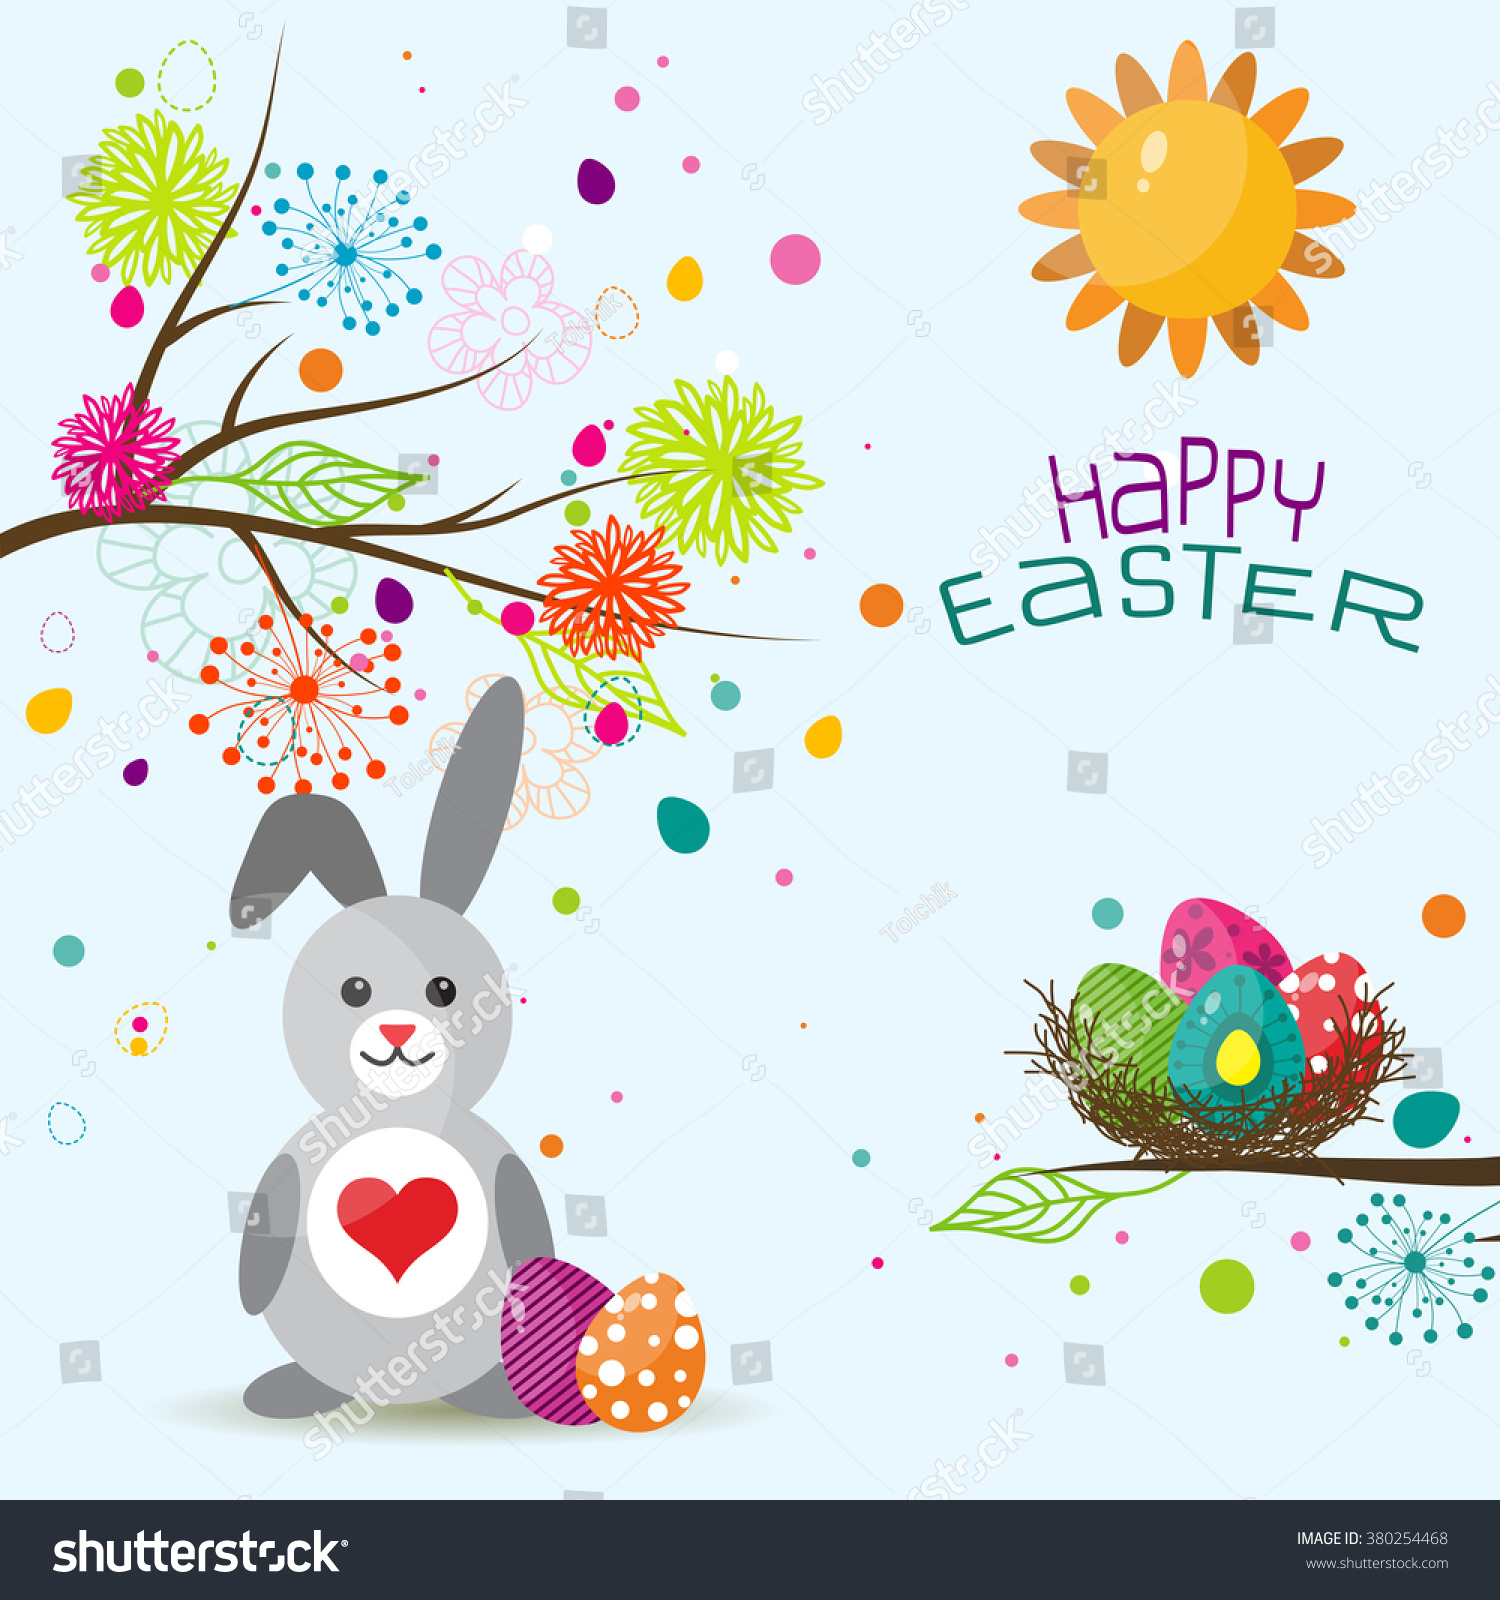 Template Easter Greeting Card Rabbit Vector Vector 380254468 – Easter Greeting Card Template